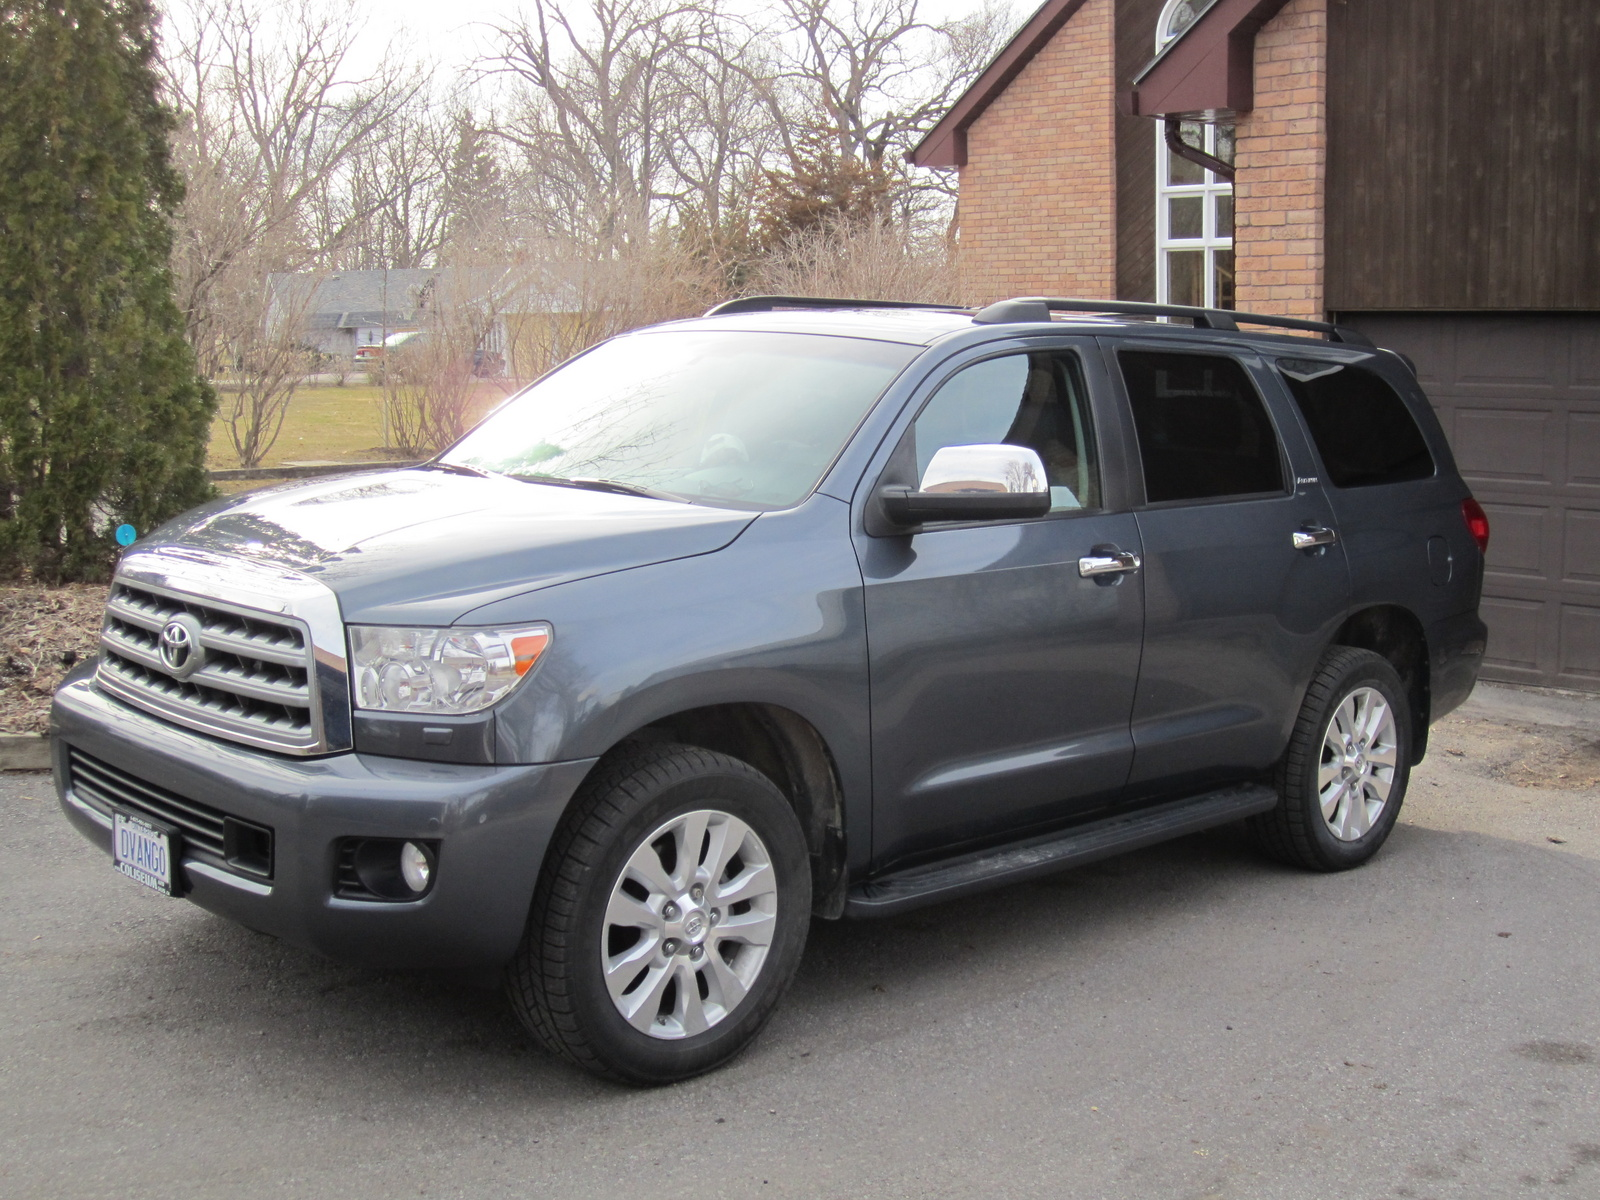 2008 toyota sequoia ii pictures information and specs. Black Bedroom Furniture Sets. Home Design Ideas